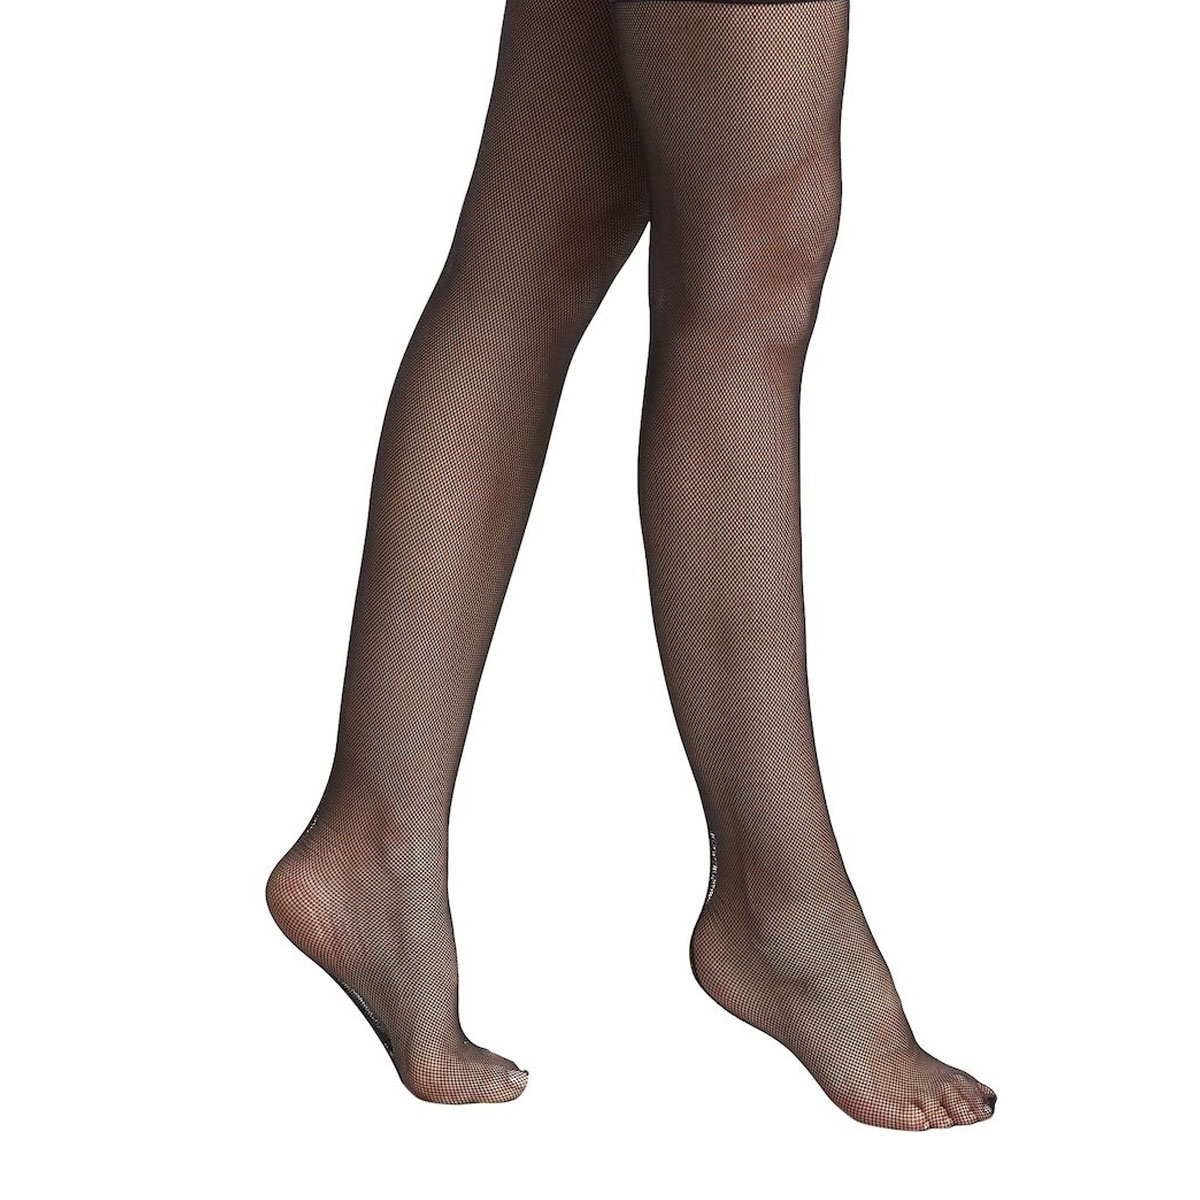 4260ebfe6c5ae ... Brown Sexy Ladies Womens Lace Top Thigh High Hold Up Stockings Hosiery  One Size